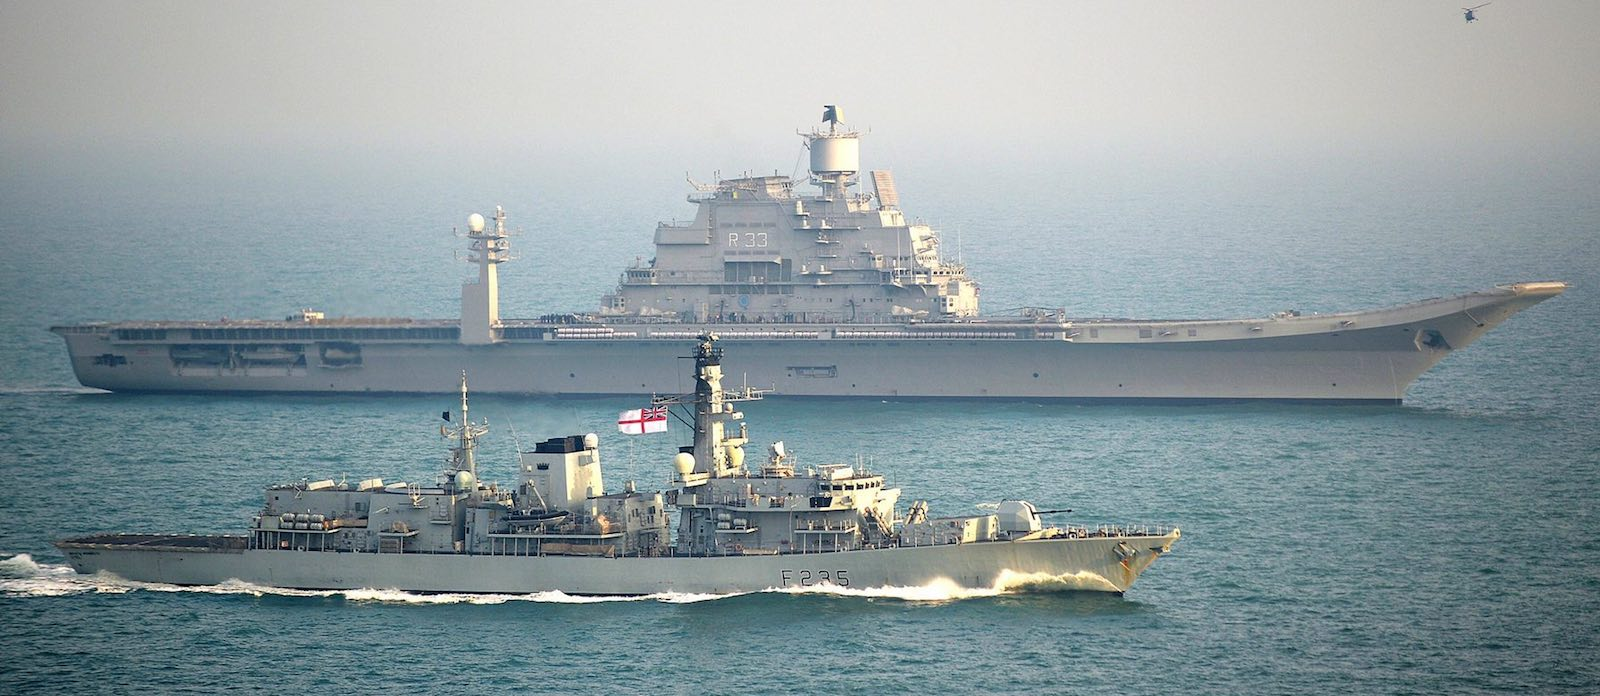 INS Vikramaditya with British Royal Navy frigate HMS Monmouth (Photo: Ministry of Defence, UK)